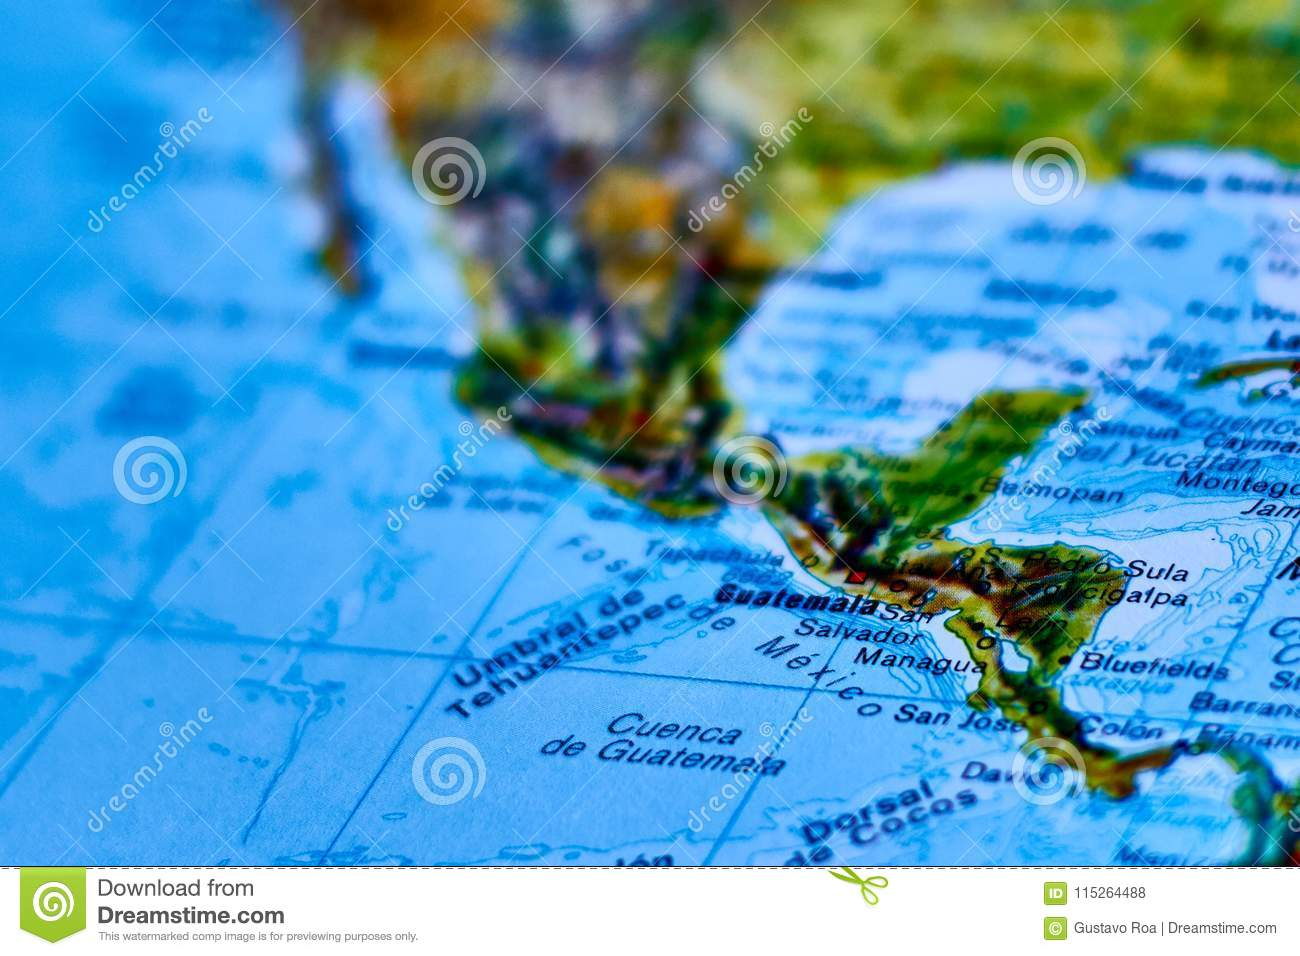 Map Of The City Of Guatemala Stock Photo - Image of towns, cities ...